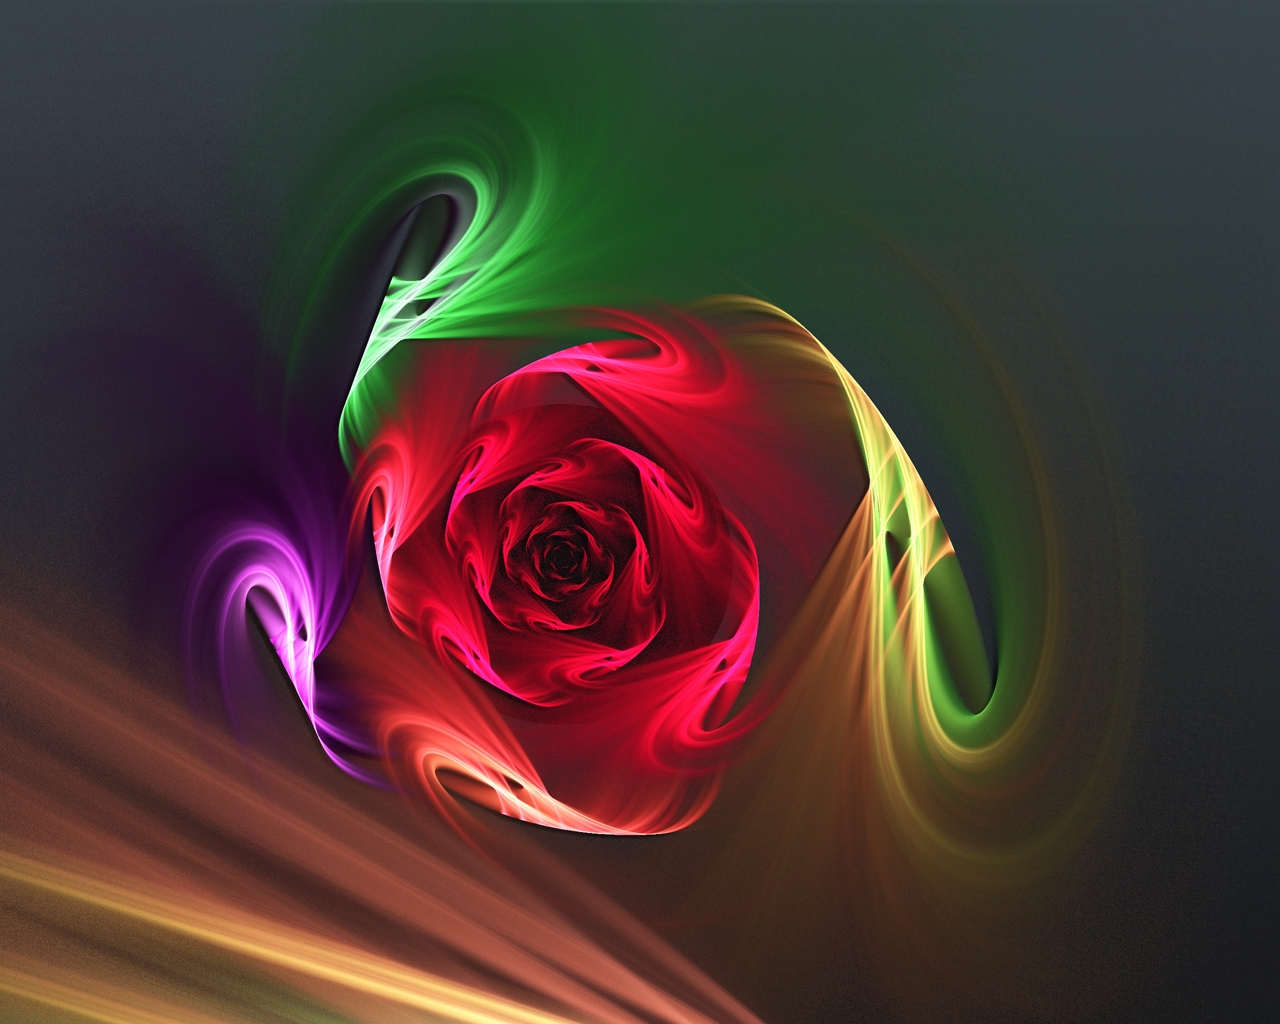 Rosered by Frankief